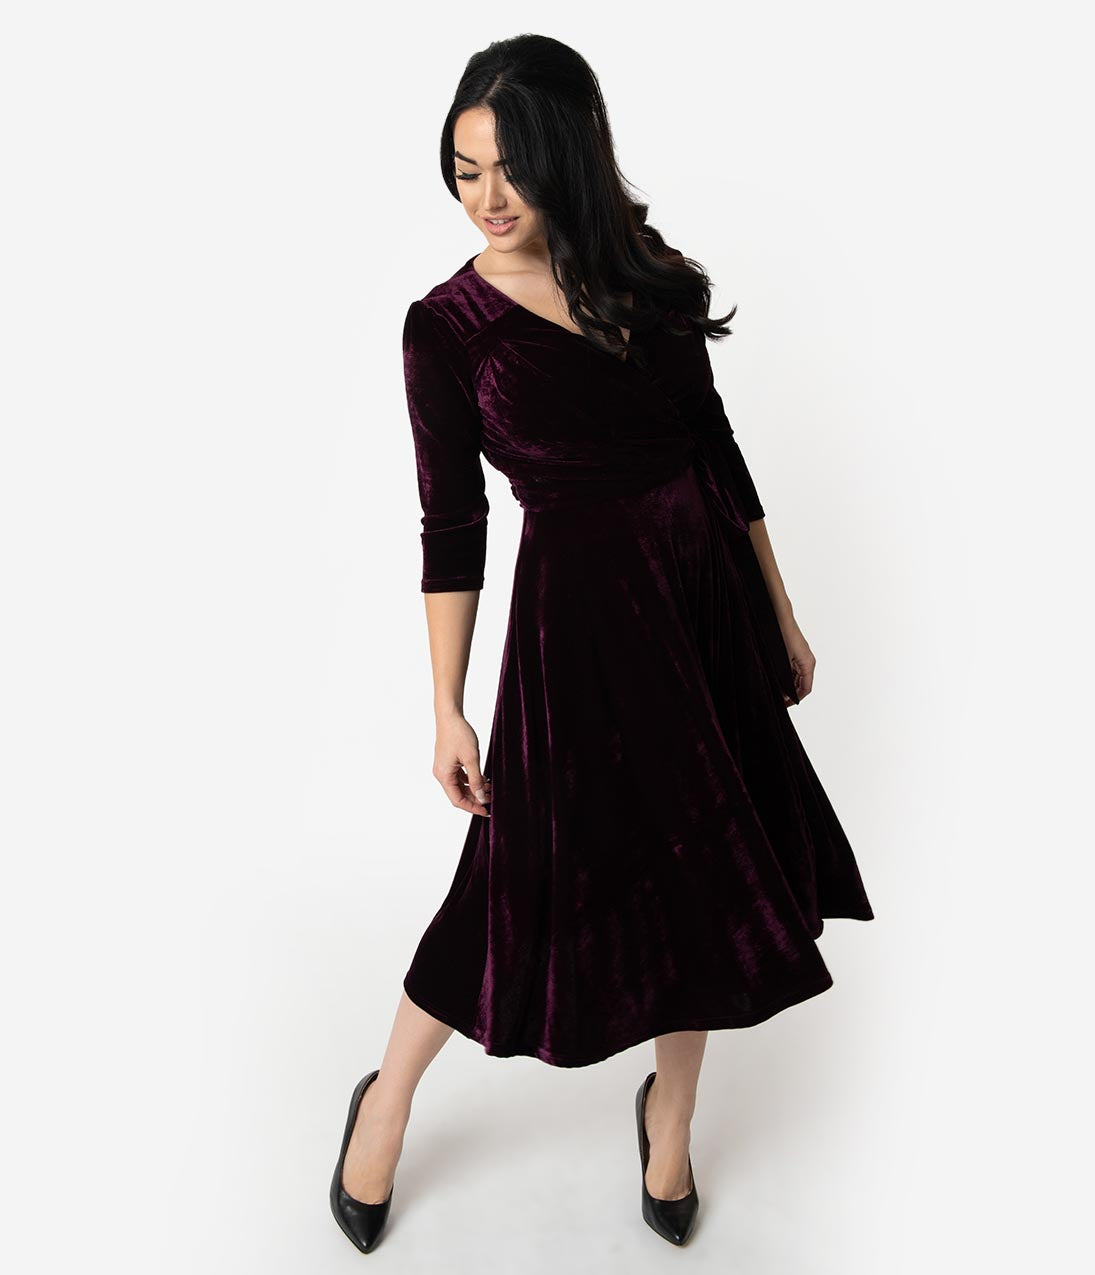 500 Vintage Style Dresses for Sale | Vintage Inspired Dresses Unique Vintage 1940S Style Eggplant Purple Velvet Kelsie Wrap Dress $98.00 AT vintagedancer.com